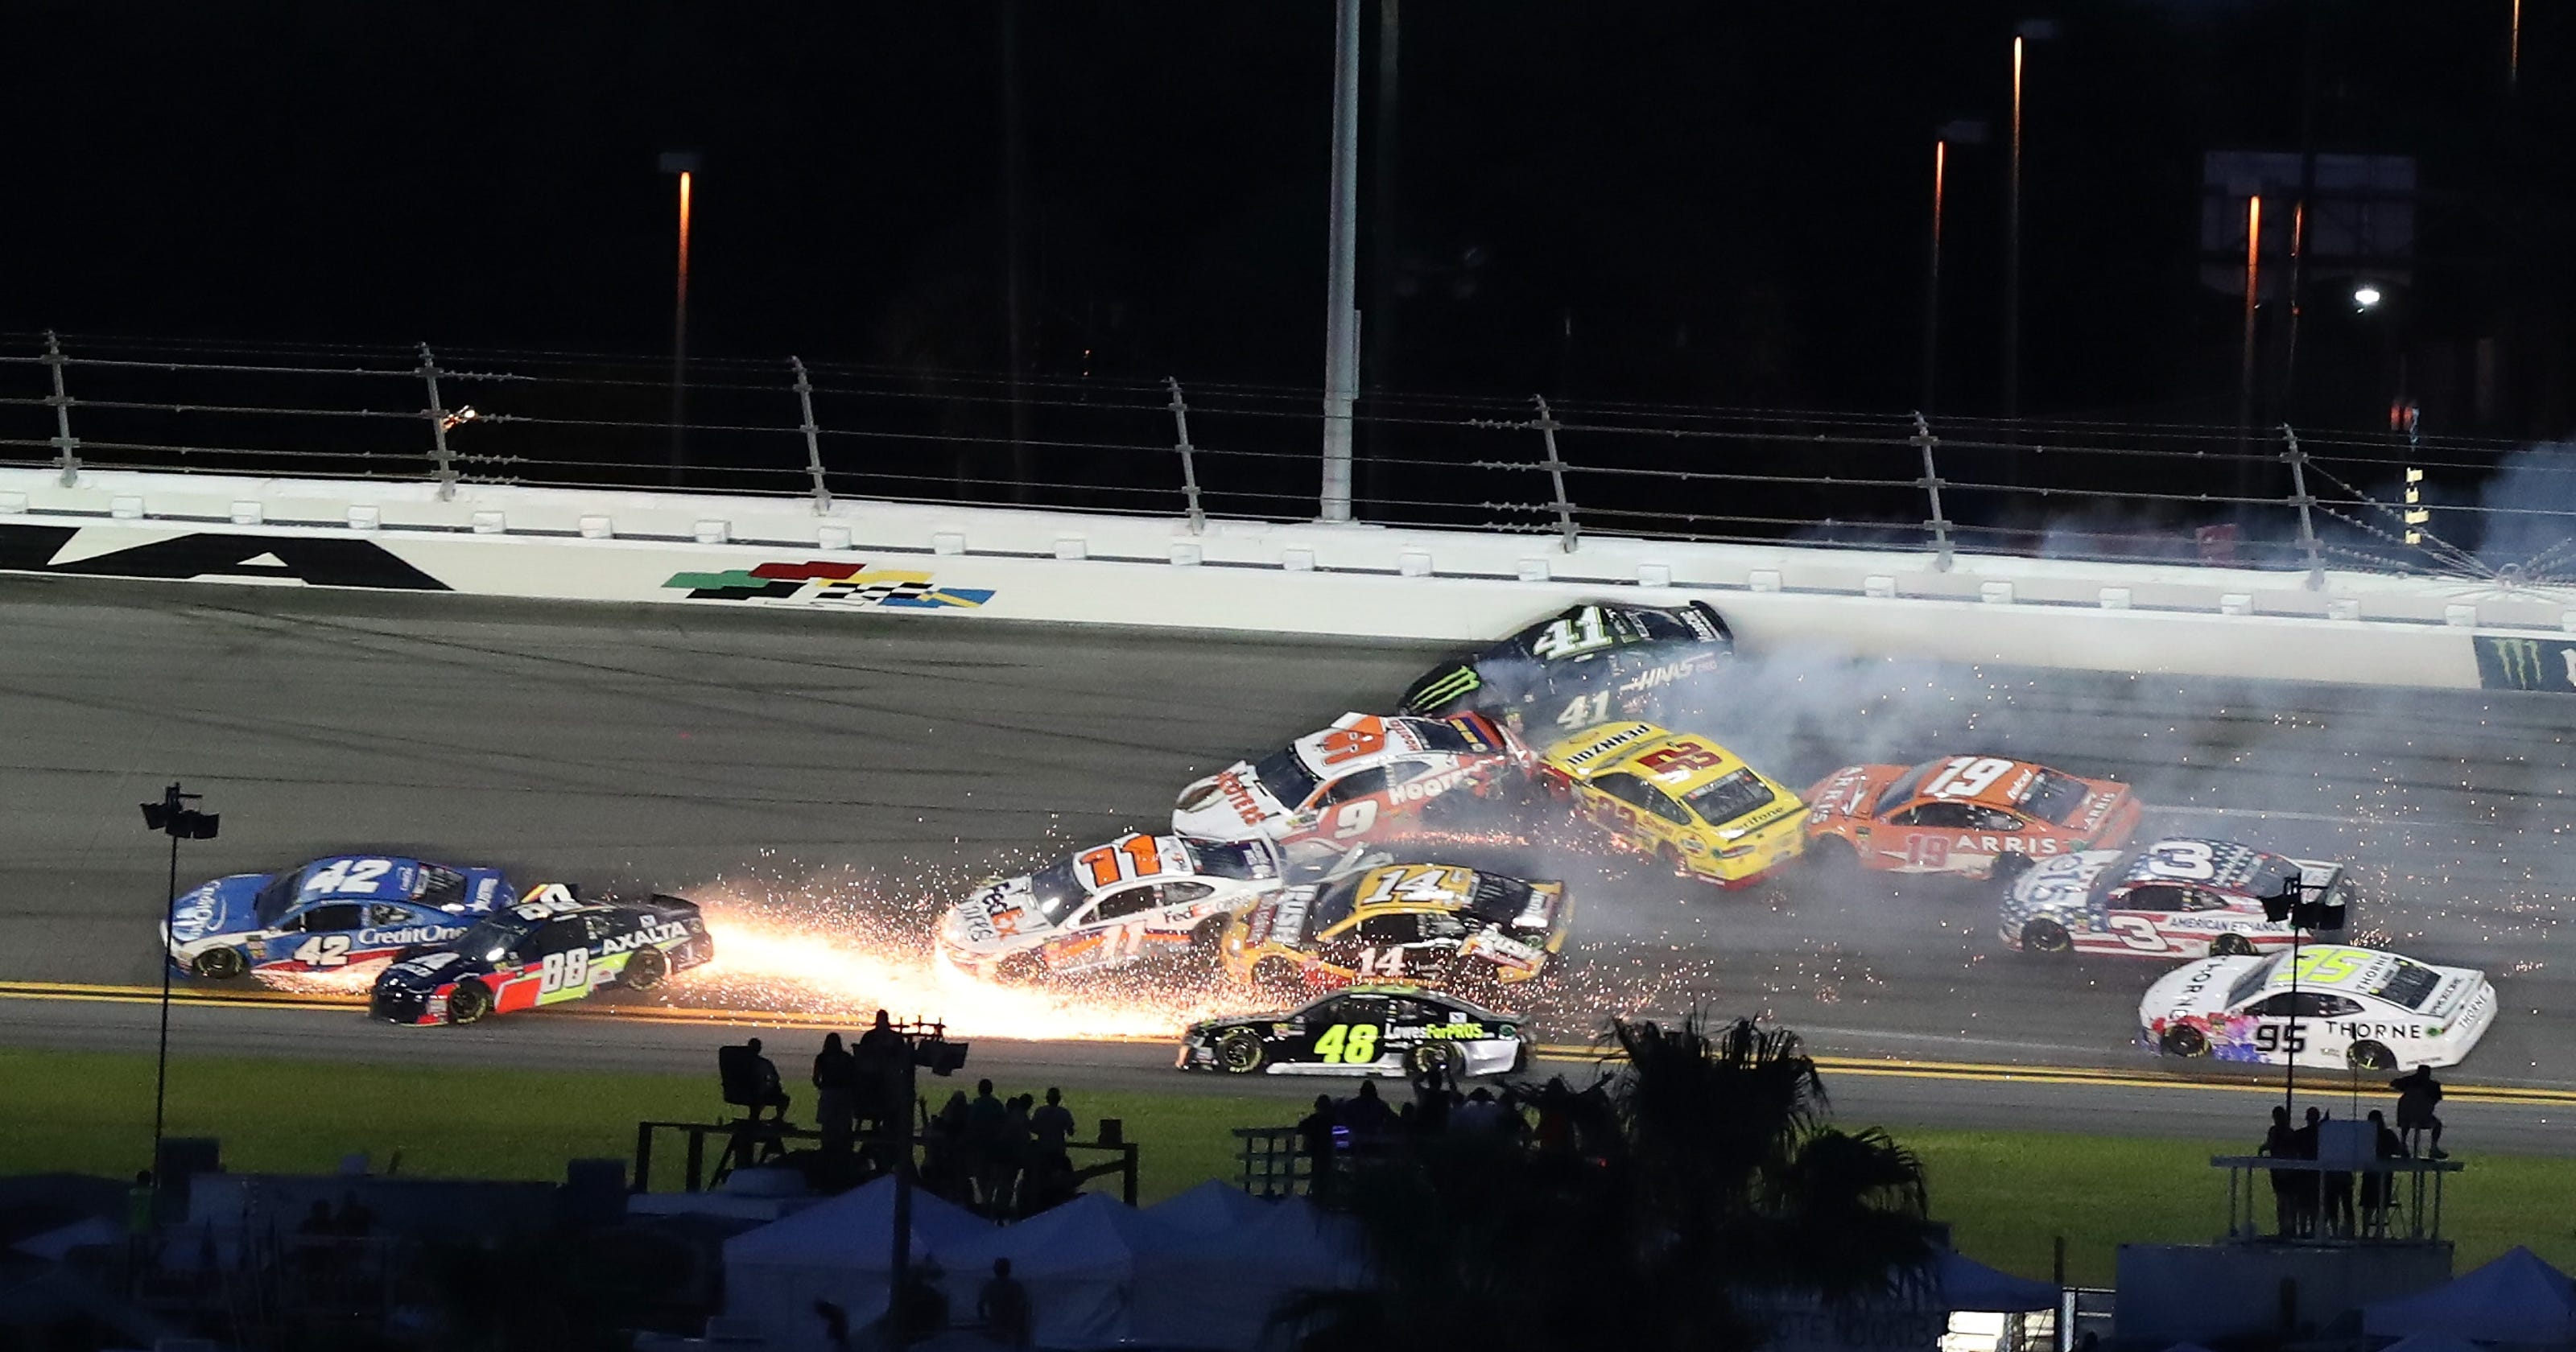 NASCAR: Half the Daytona field collides in massive crash in Cup race